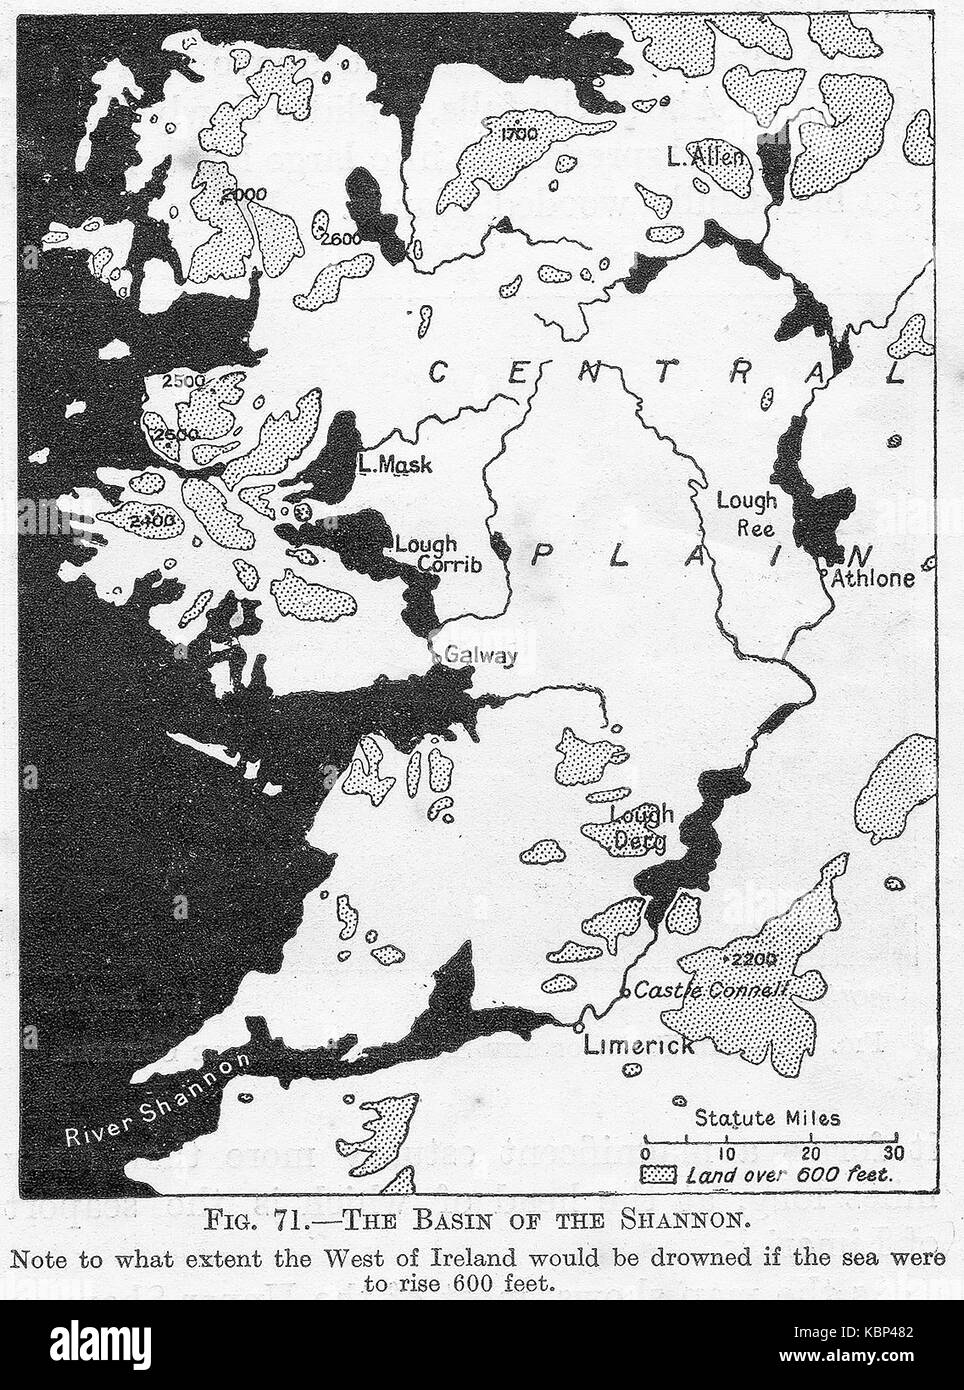 Climate map black and white stock photos images alamy a 1914 map about global warming and sea levels showing how the shannon basin in ireland gumiabroncs Gallery